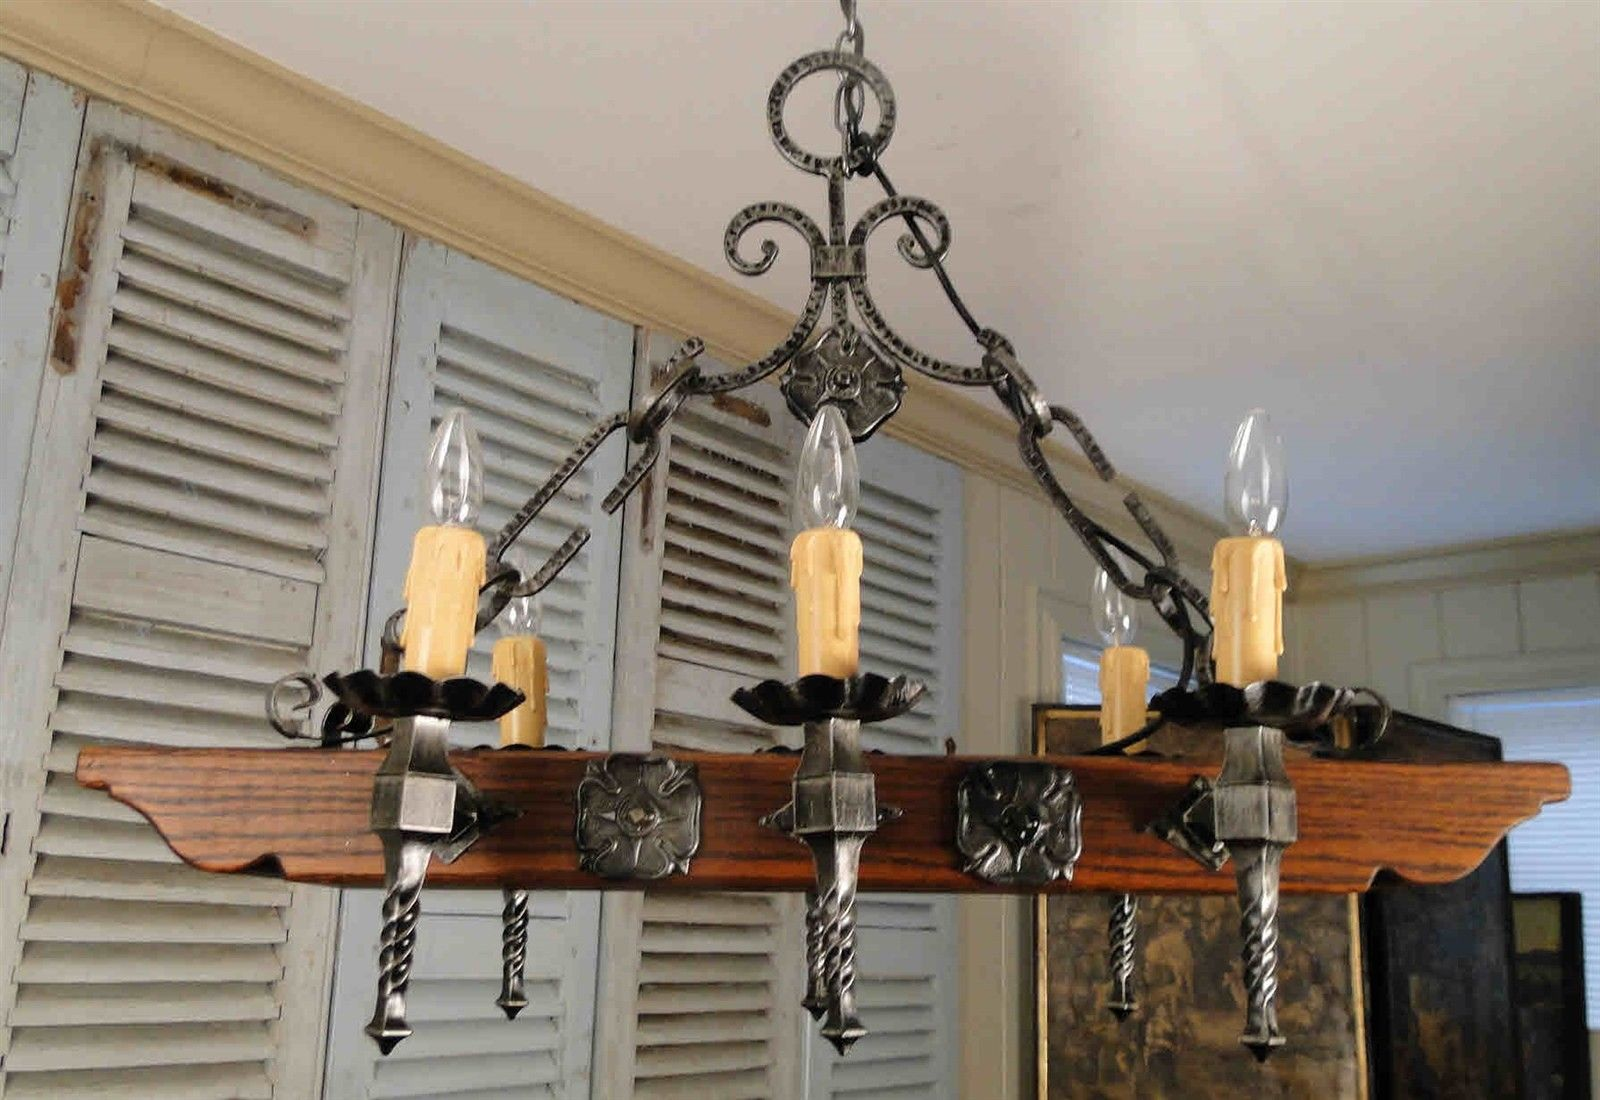 Vintage French Rustic Castle Chandelier Hanging Lamp 6 candle lights wood & iron